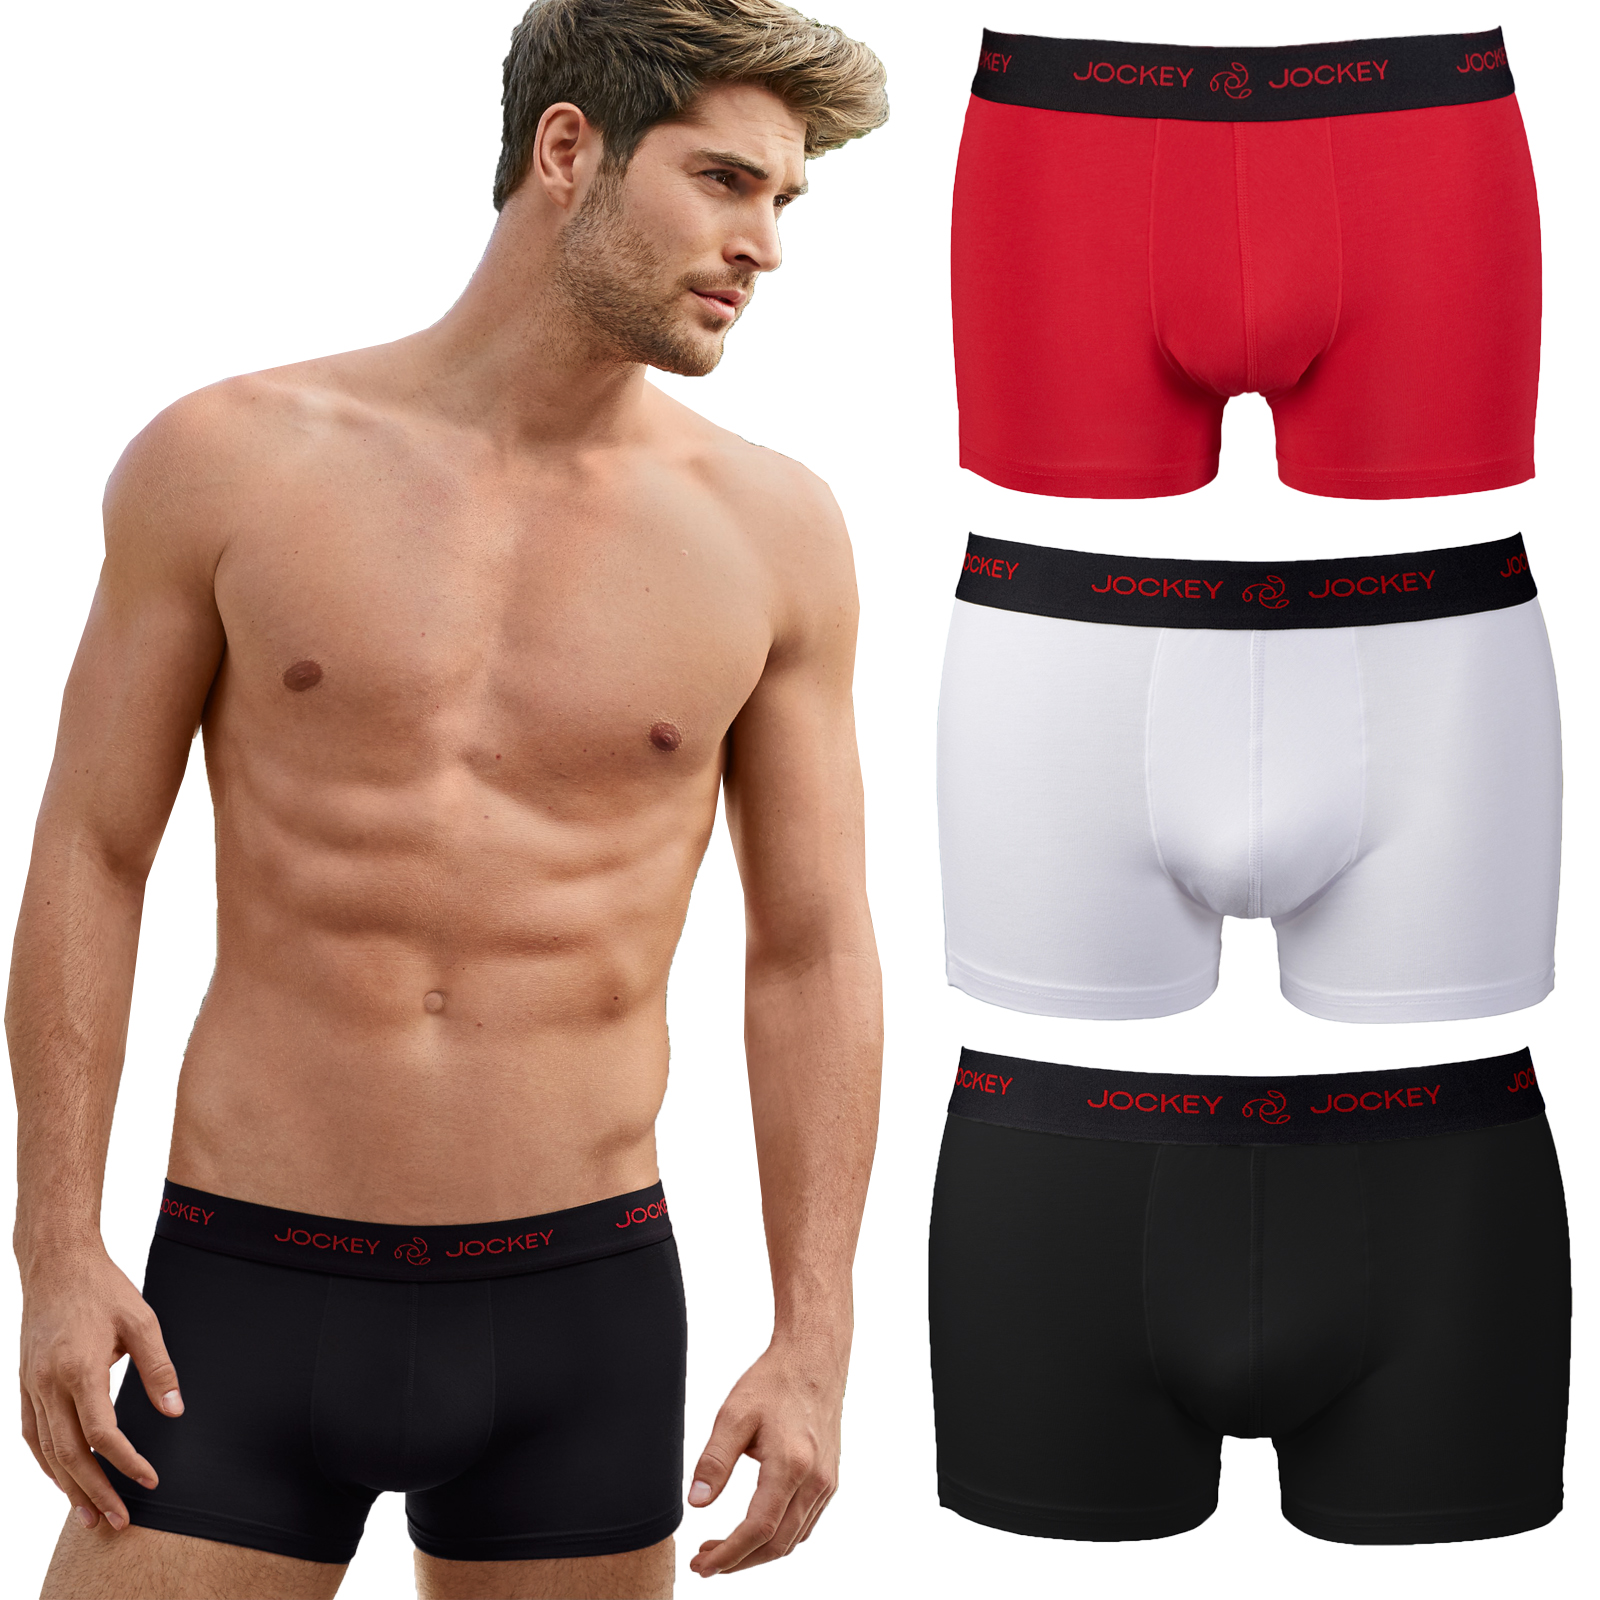 factory outlets world-wide selection of 100% quality Details about Jockey Mens Boxer Shorts Underwear Stylish 3D Innovations  Pants Waistband Trunks